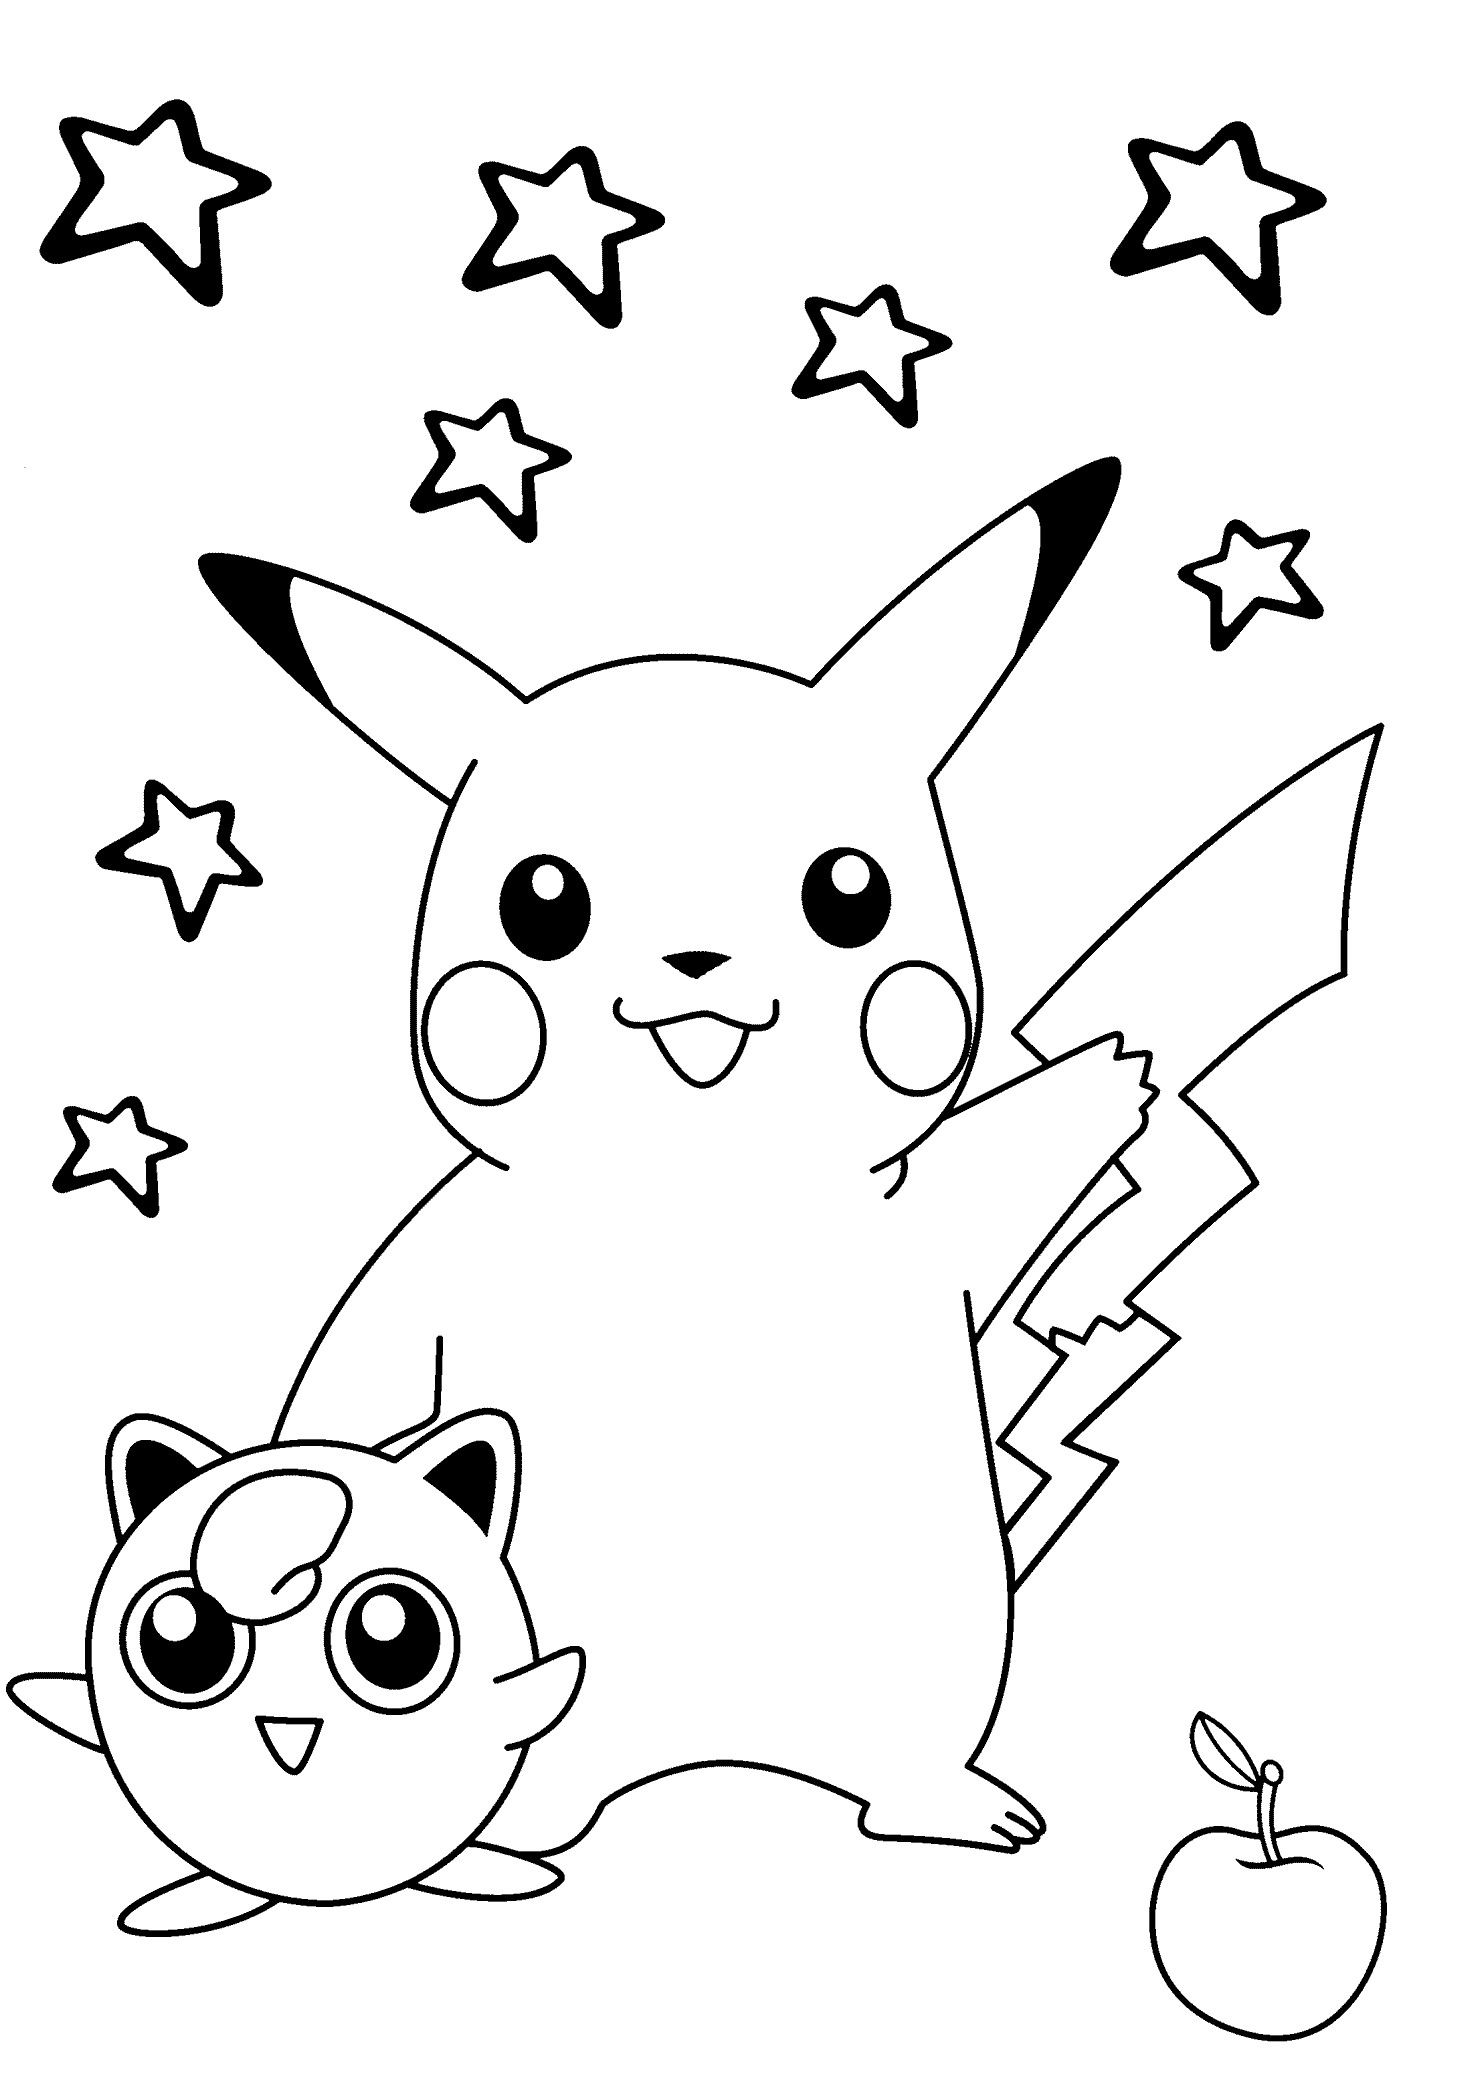 Free Pokemon Coloring Book Pdf From the thousands of